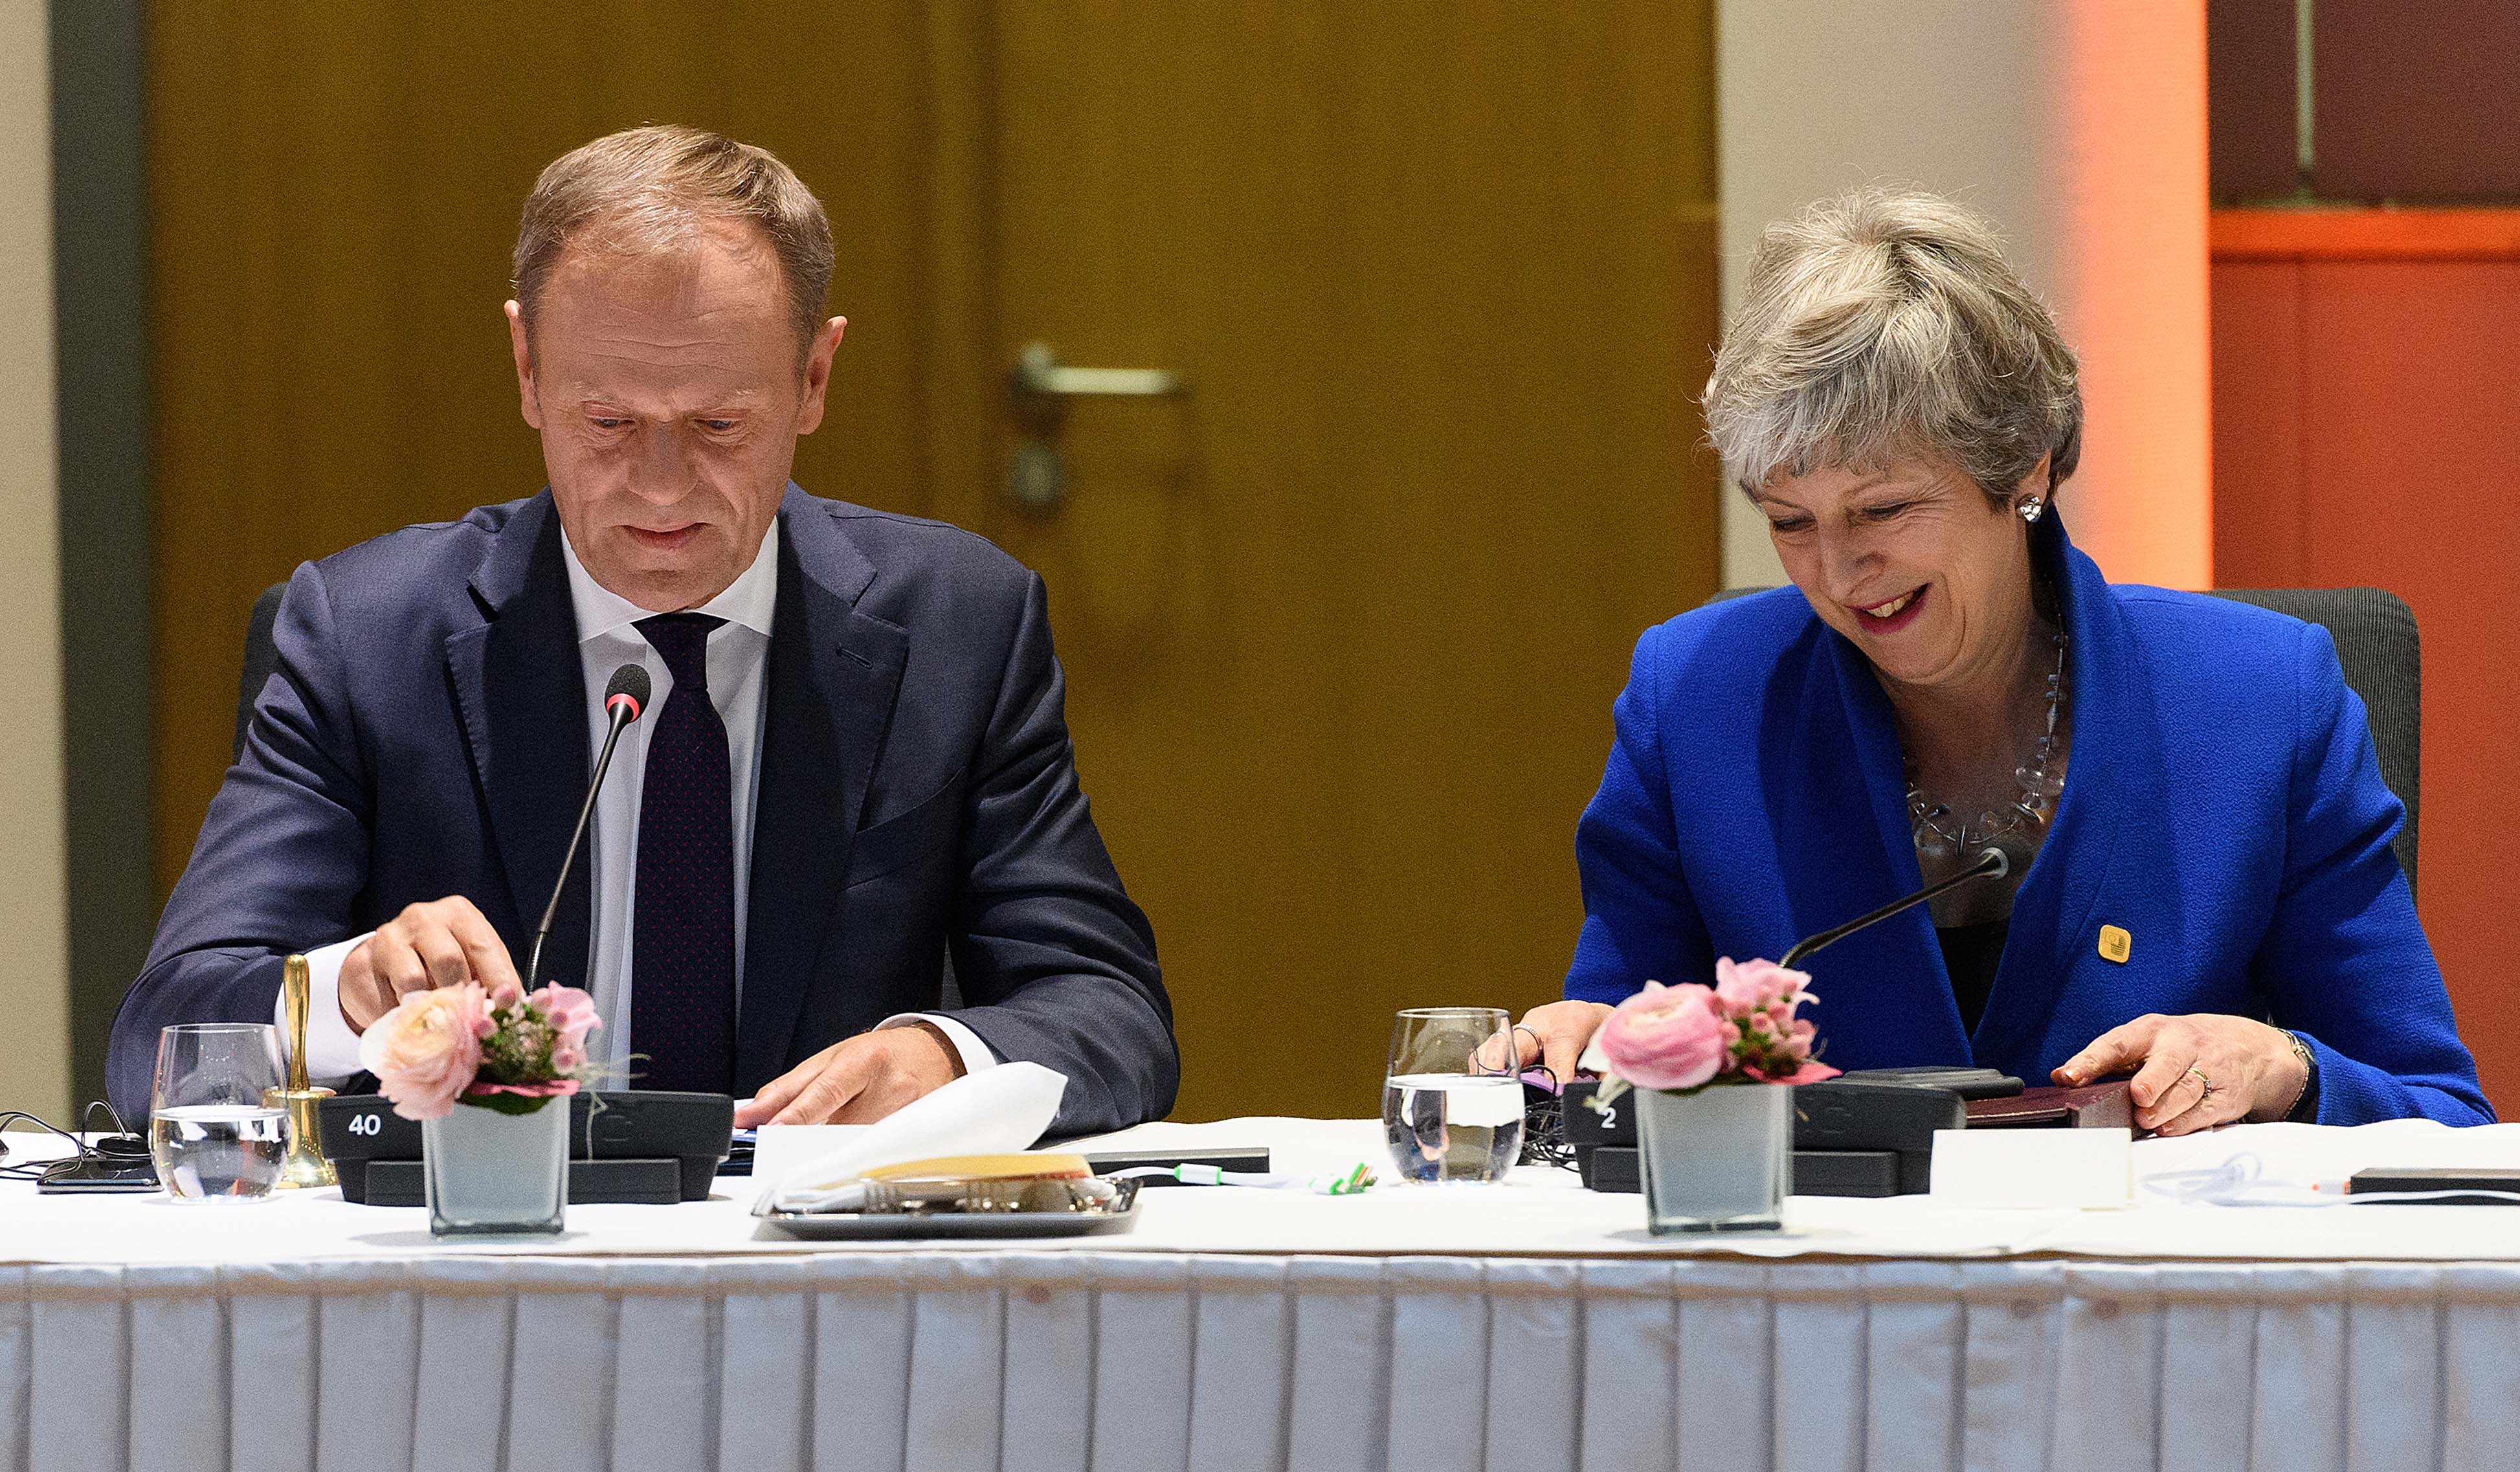 President of the European Council Donald Tusk and Prime Minister Theresa May attend a round table meeting in Brussels, Belgium.